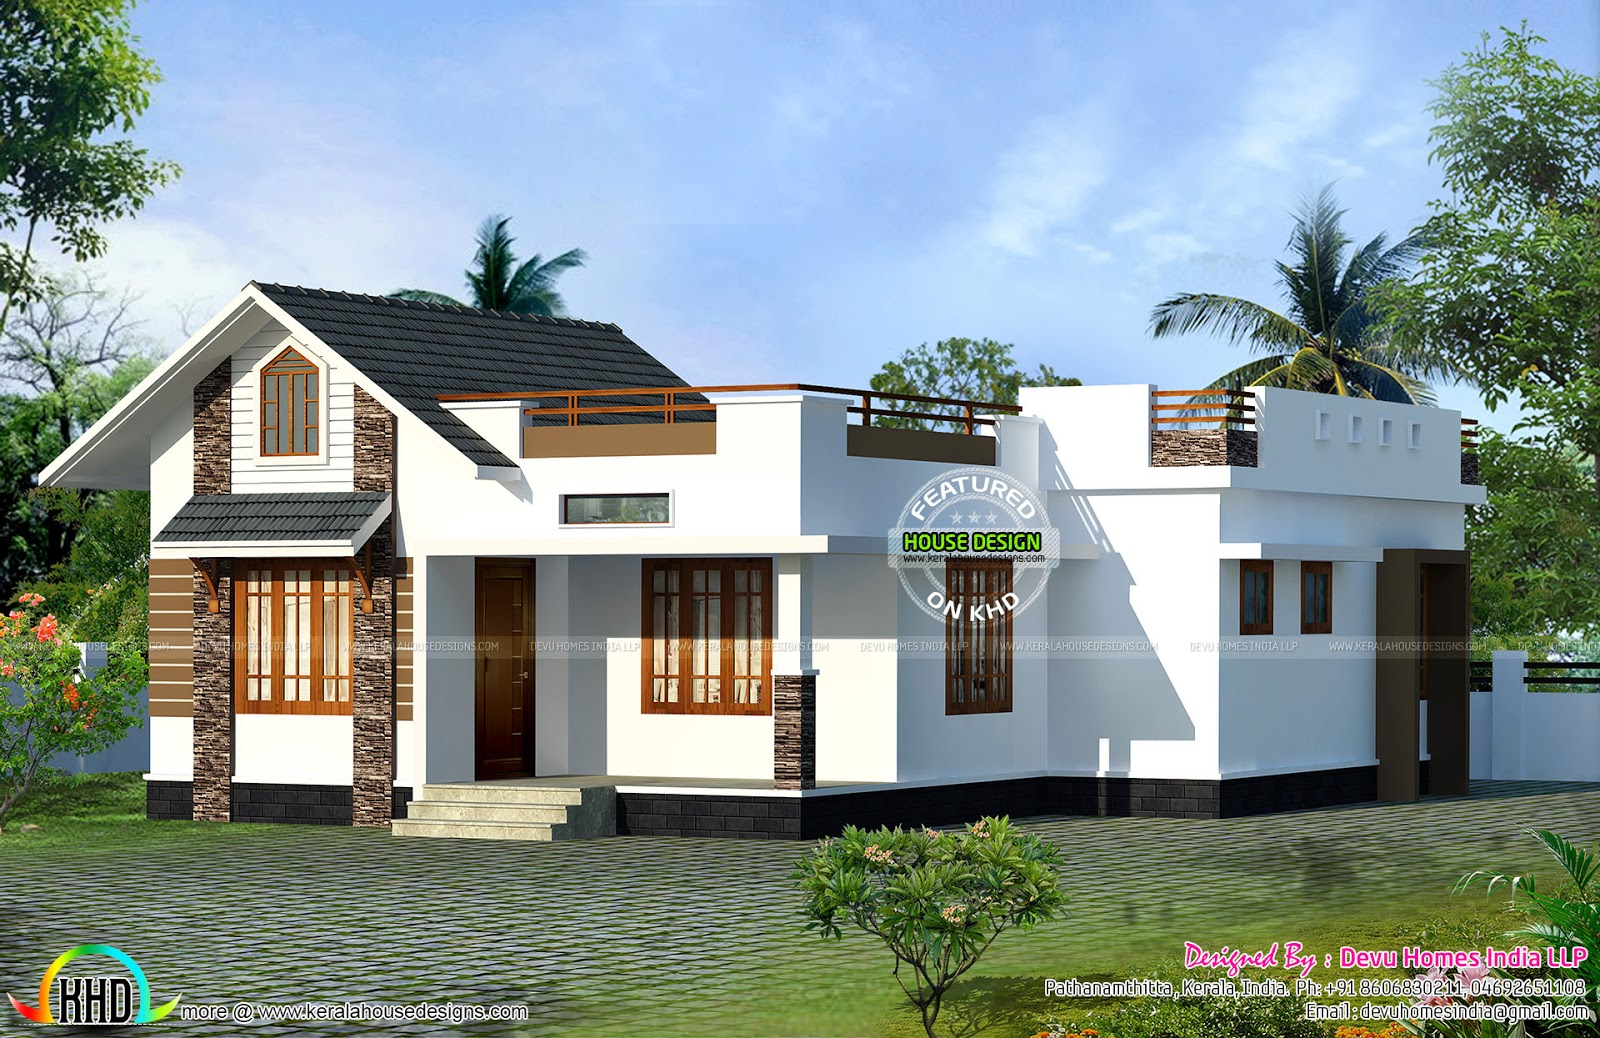 North facing vastu home single floor kerala home design for Indian vastu home plans and designs